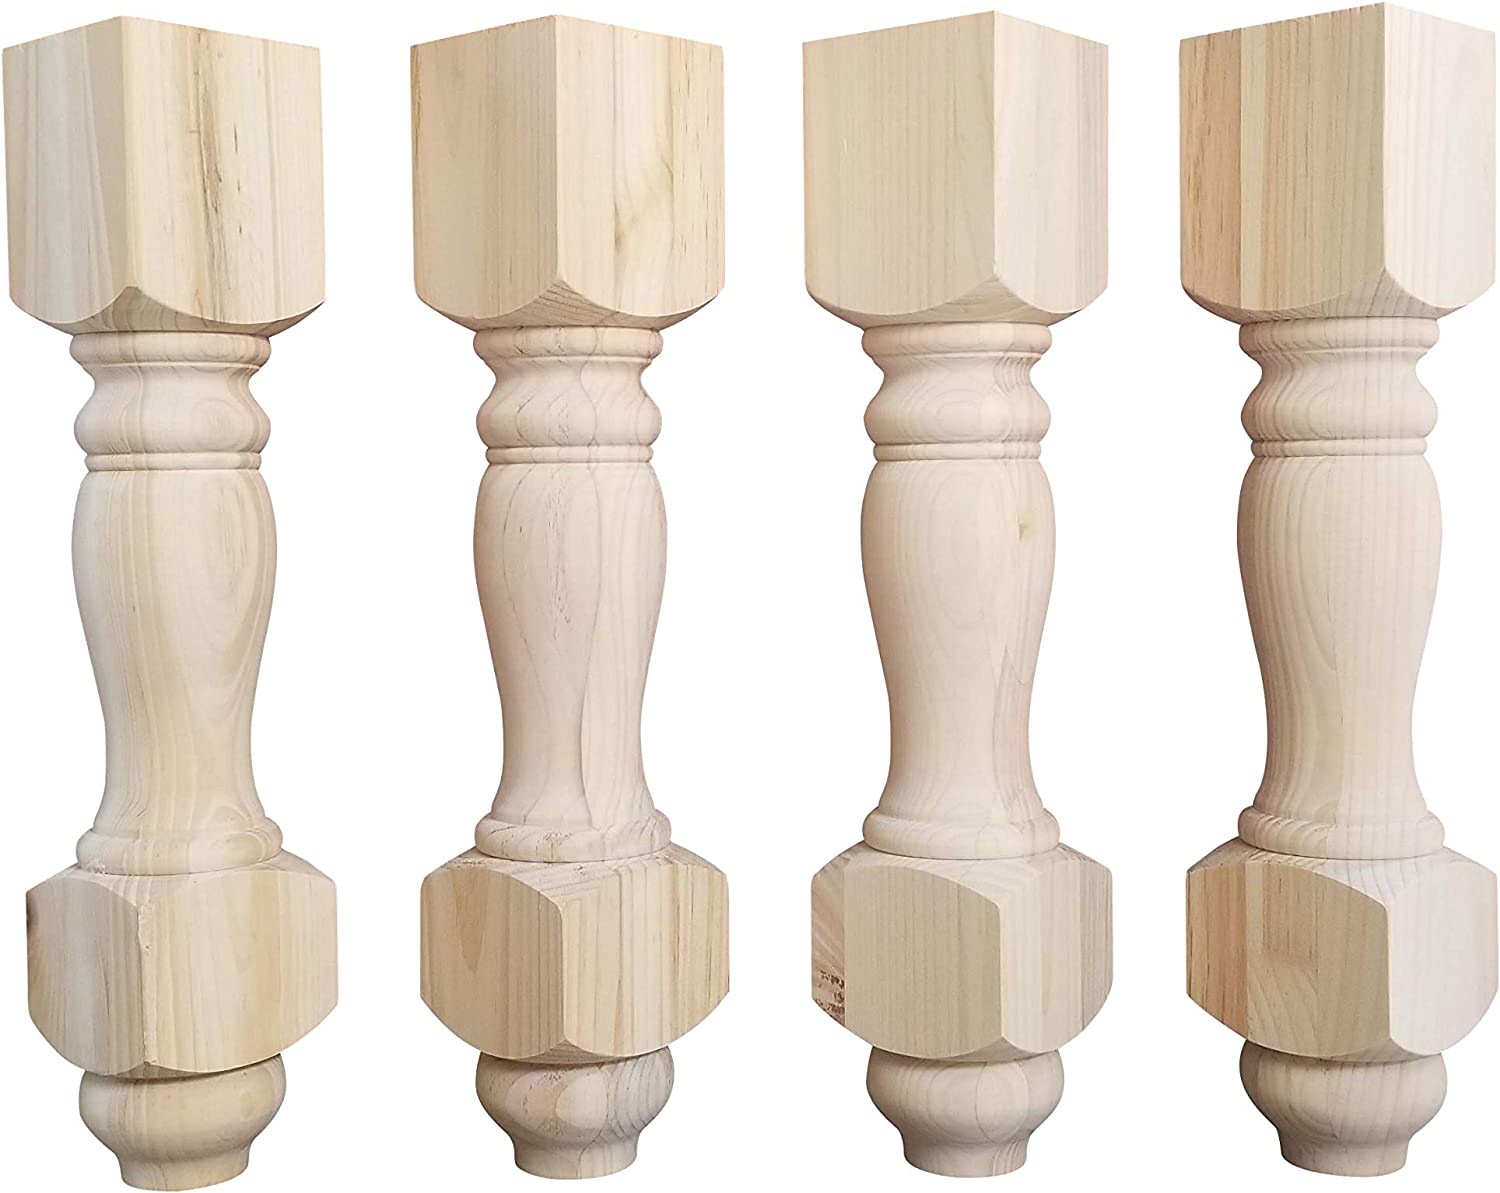 18 Inch Pine B3 Bench Legs Or Coffee Table Legs Unfinished Wood Wide Set Of 4 Amazon Com [ 1200 x 1500 Pixel ]